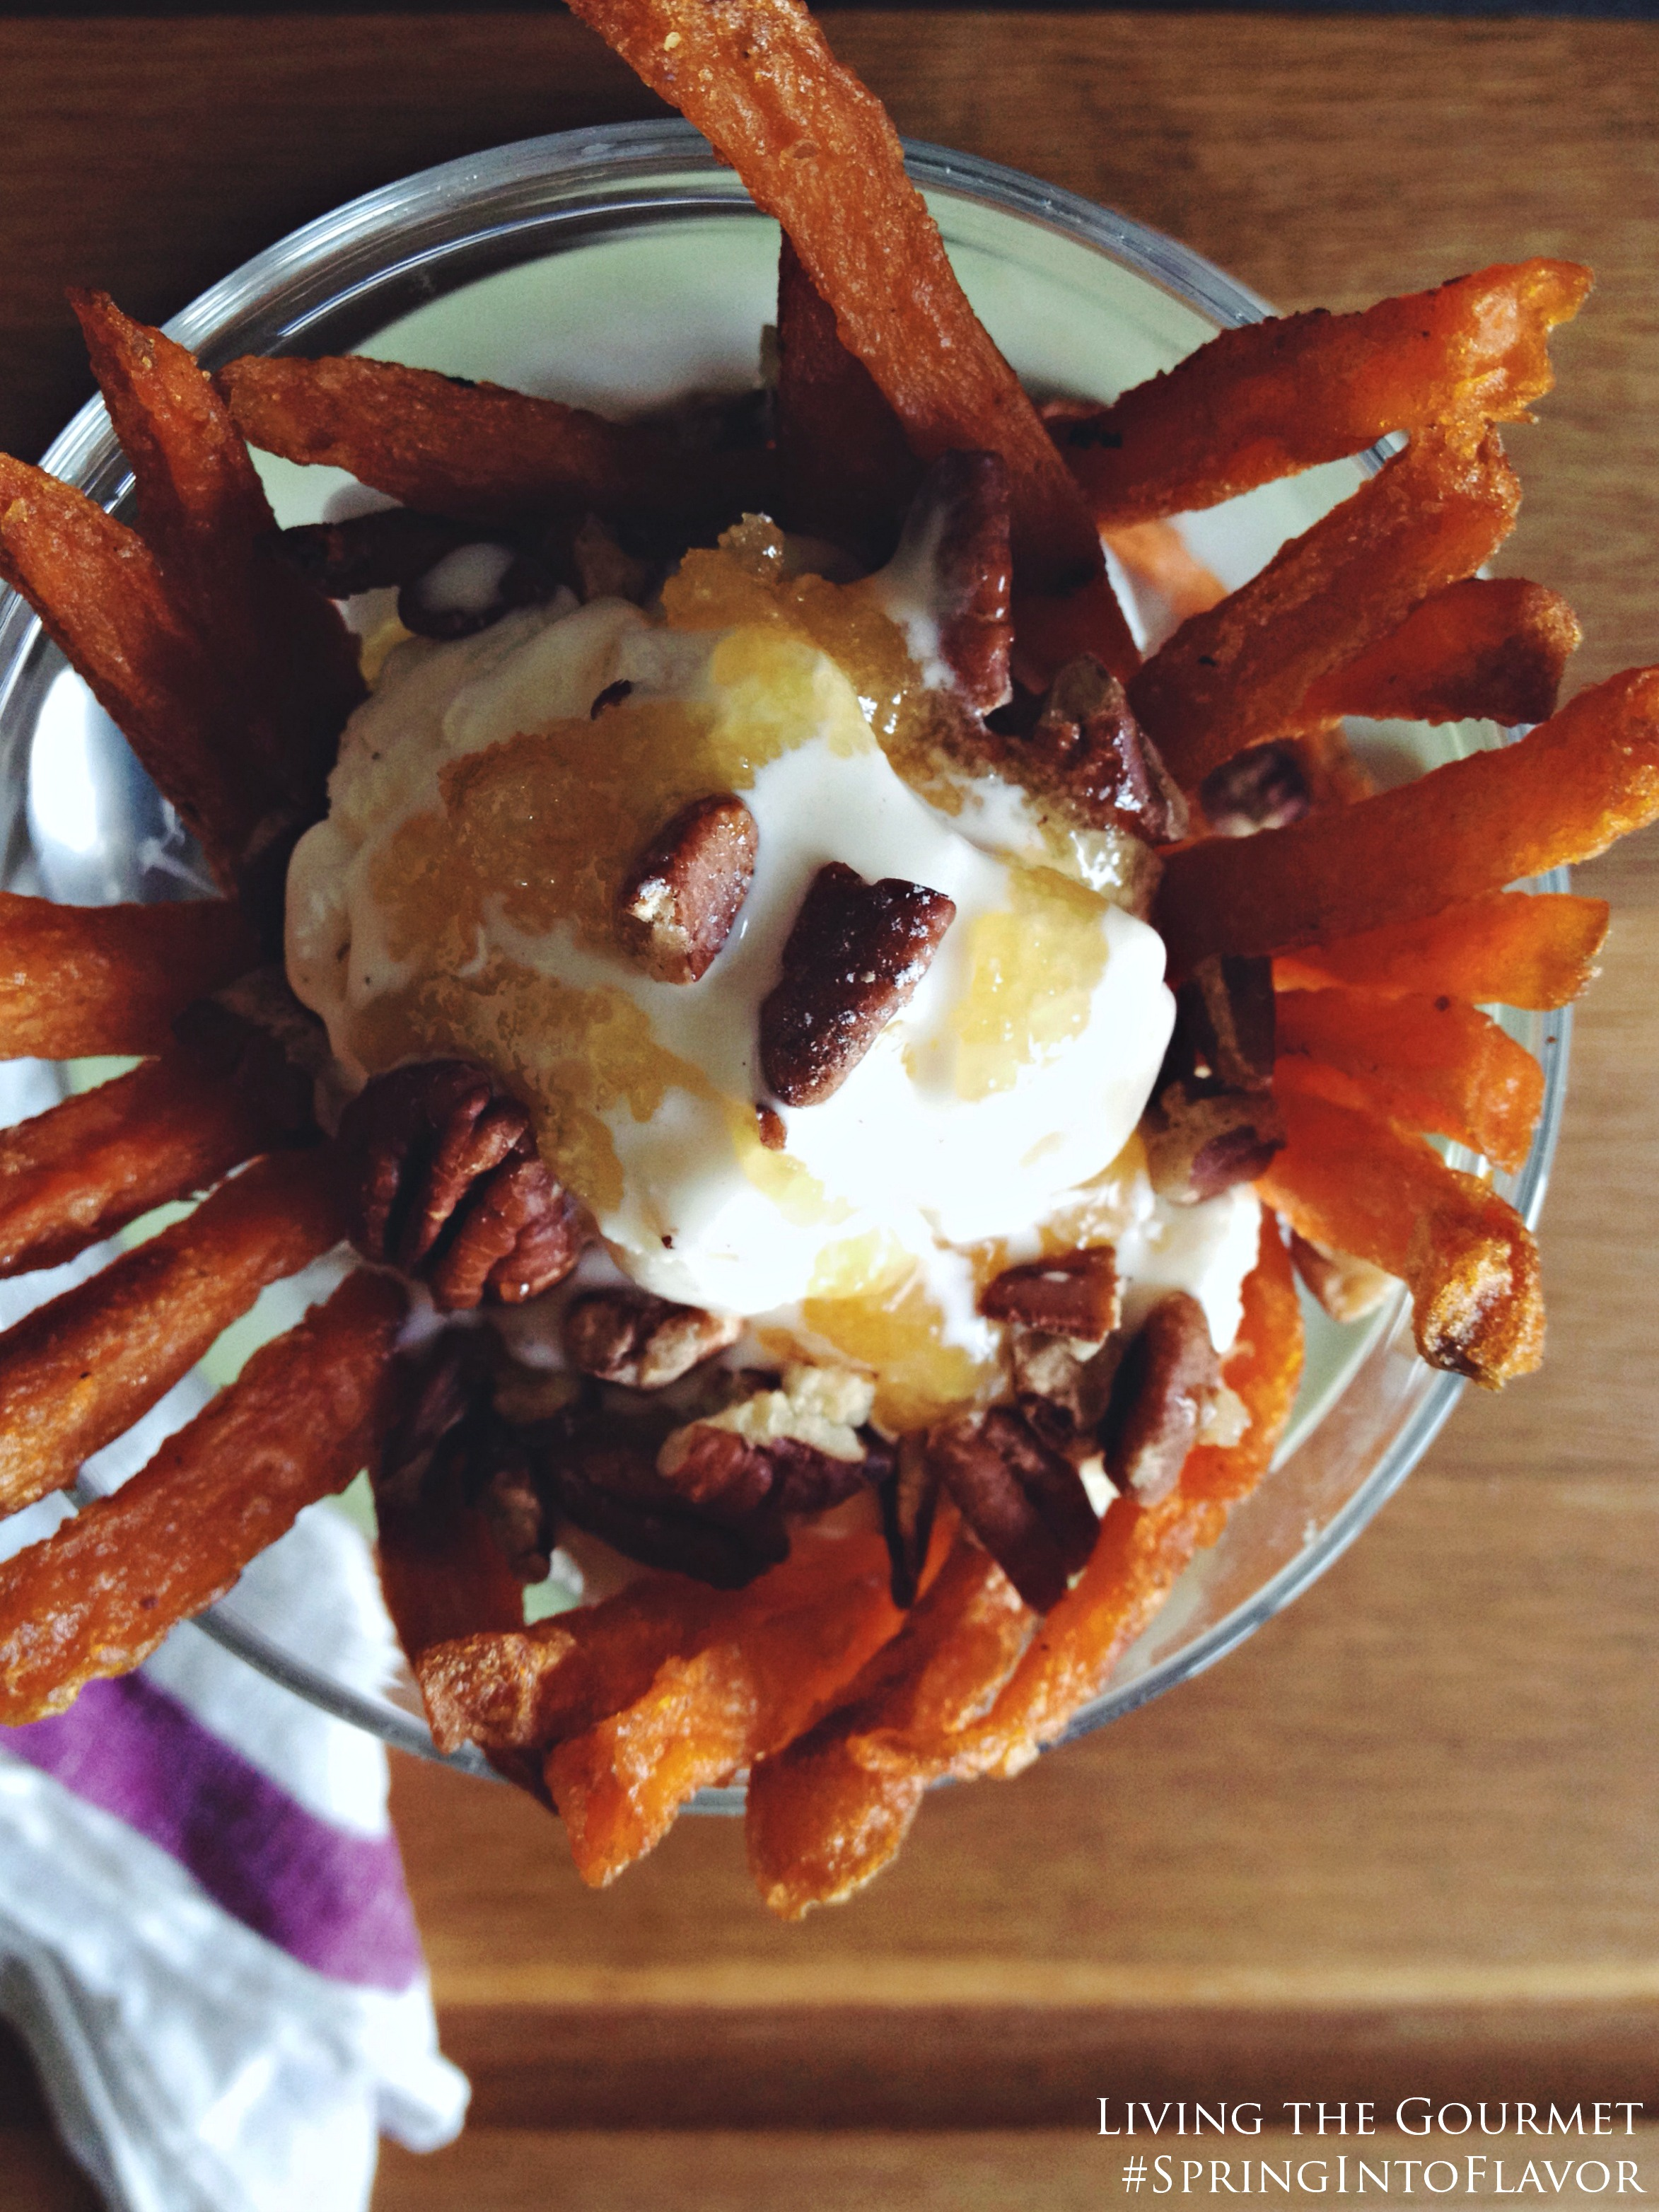 Living the Gourmet: Sweet Potato Sundae